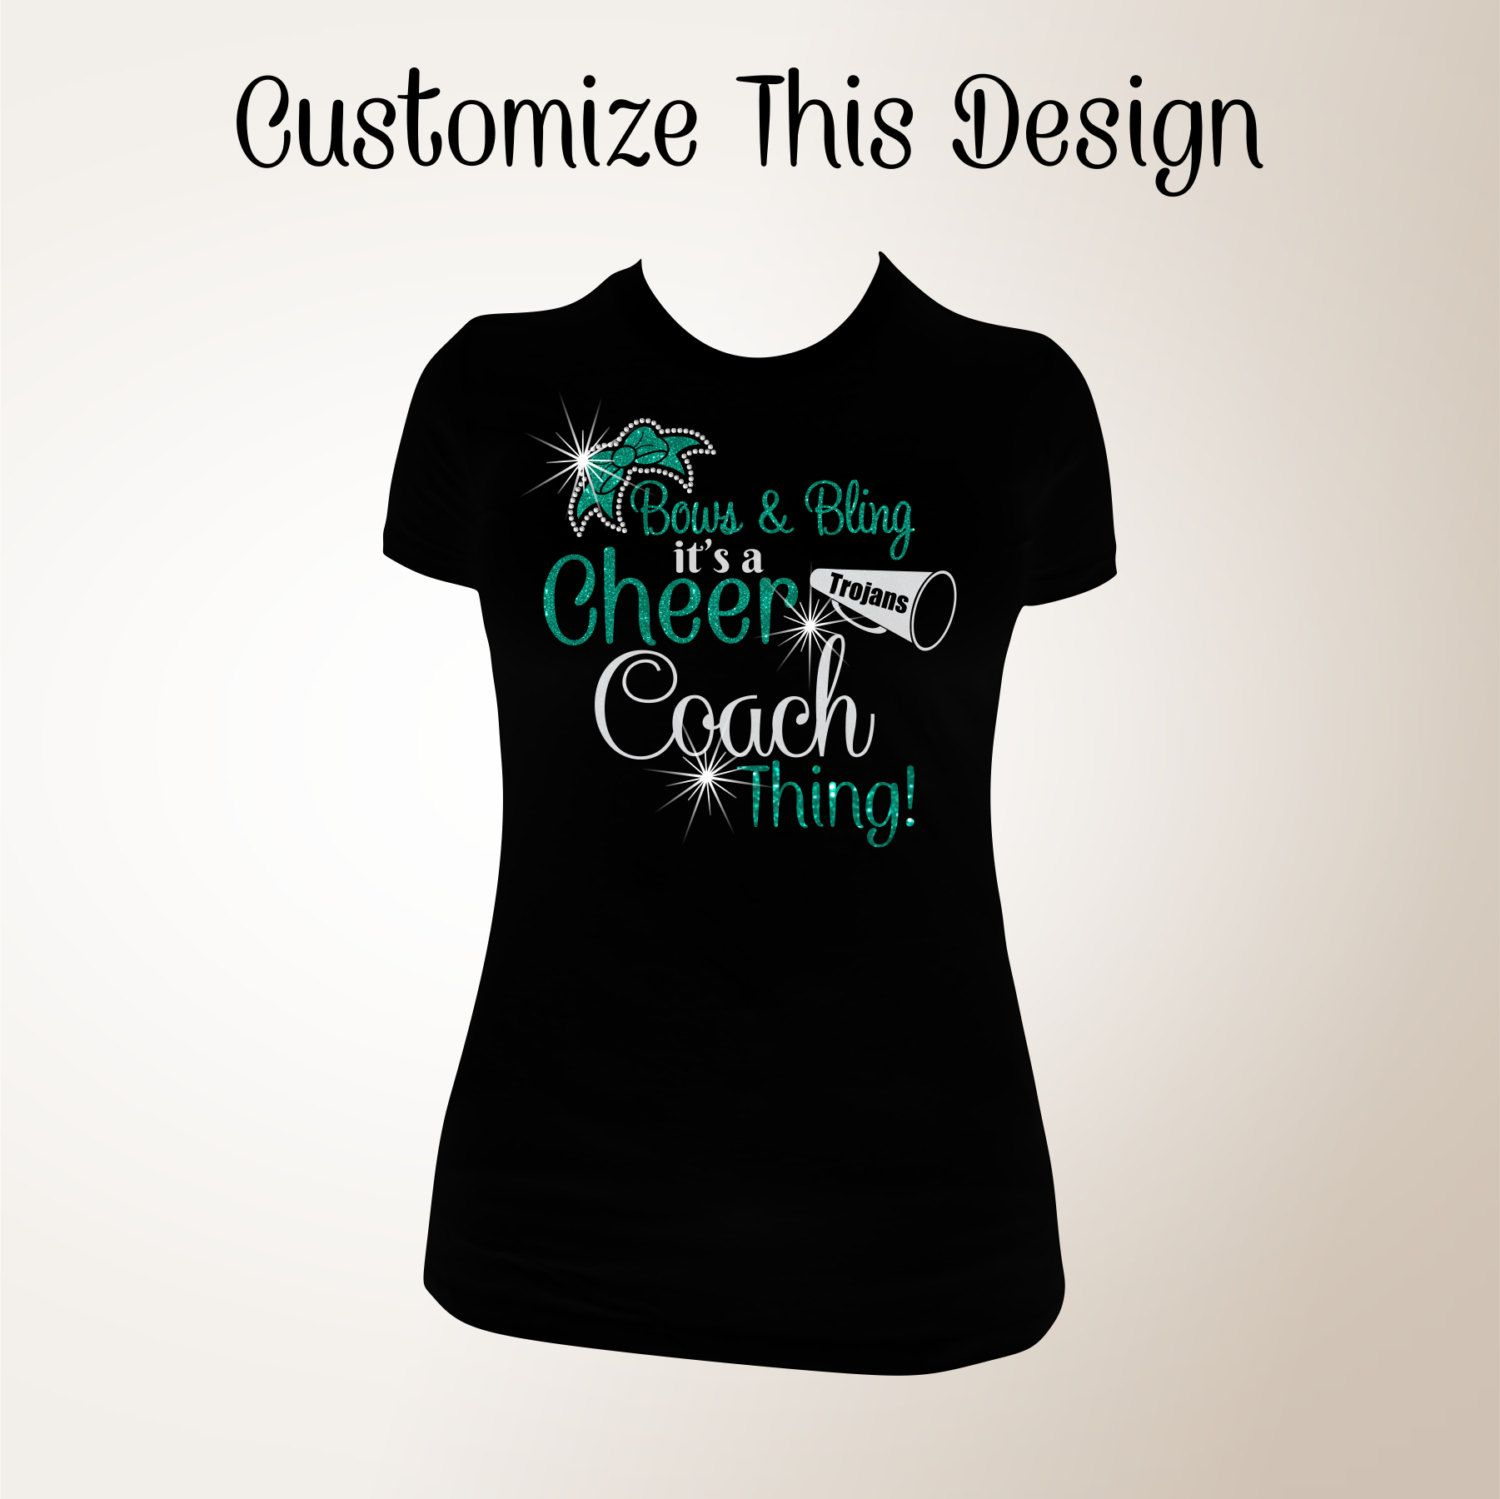 29416fdb7c68 Bows and Bling It's a Cheer Coach Thing, Cheer Coach Bling Shirts, Bling  Cheer Coach Shirts, Cheer Coach Shirt, Cheerleader Shirt, Cheer by TCXpress  on Etsy